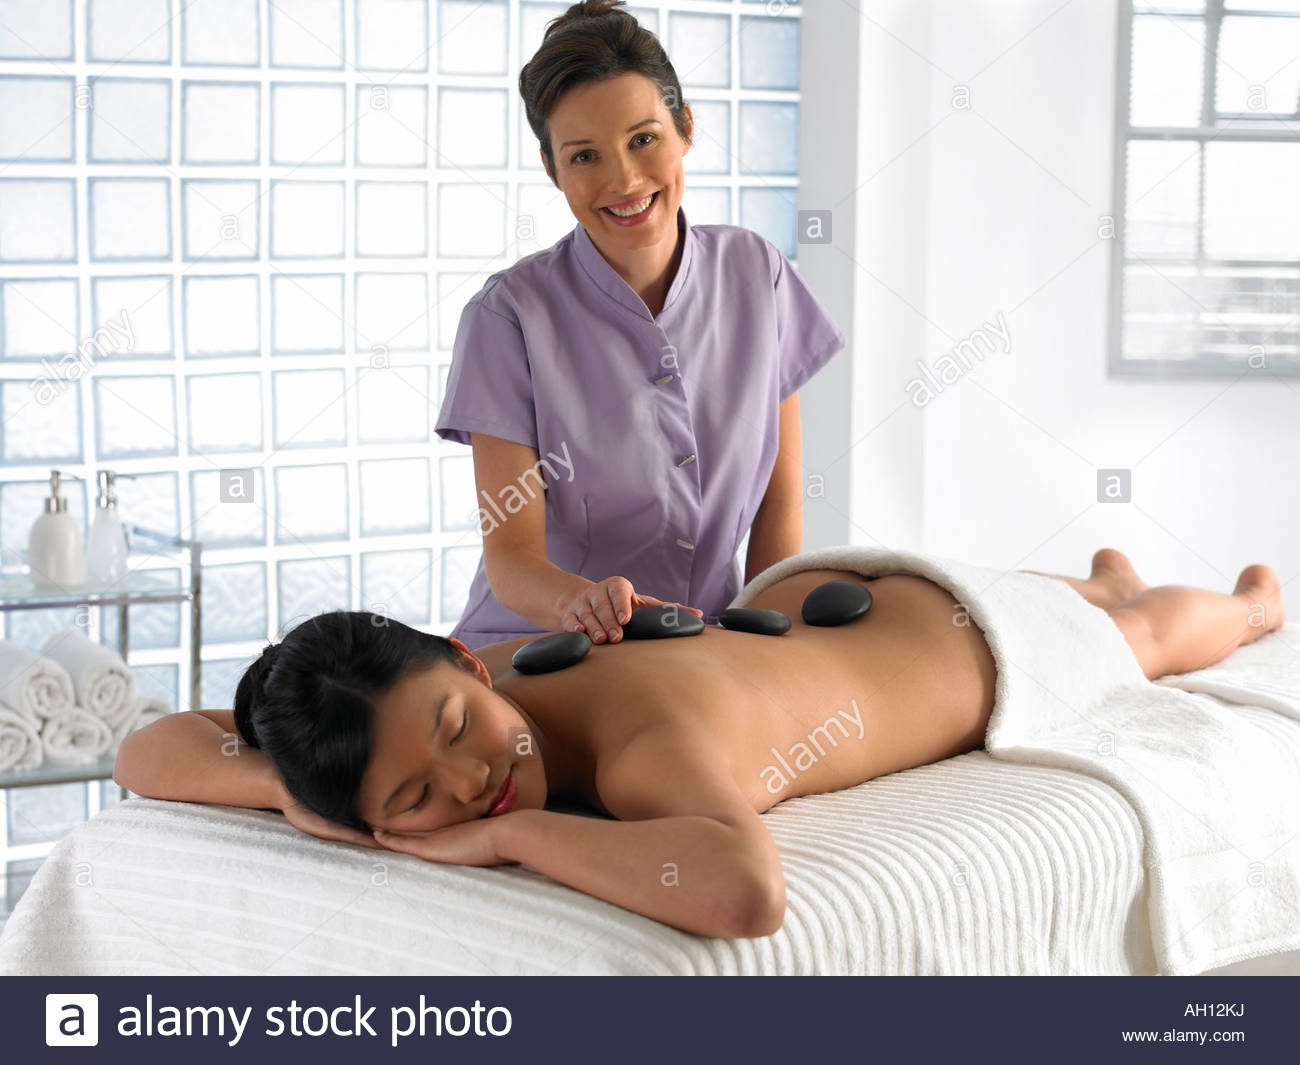 A woman getting a massage Stock Photo